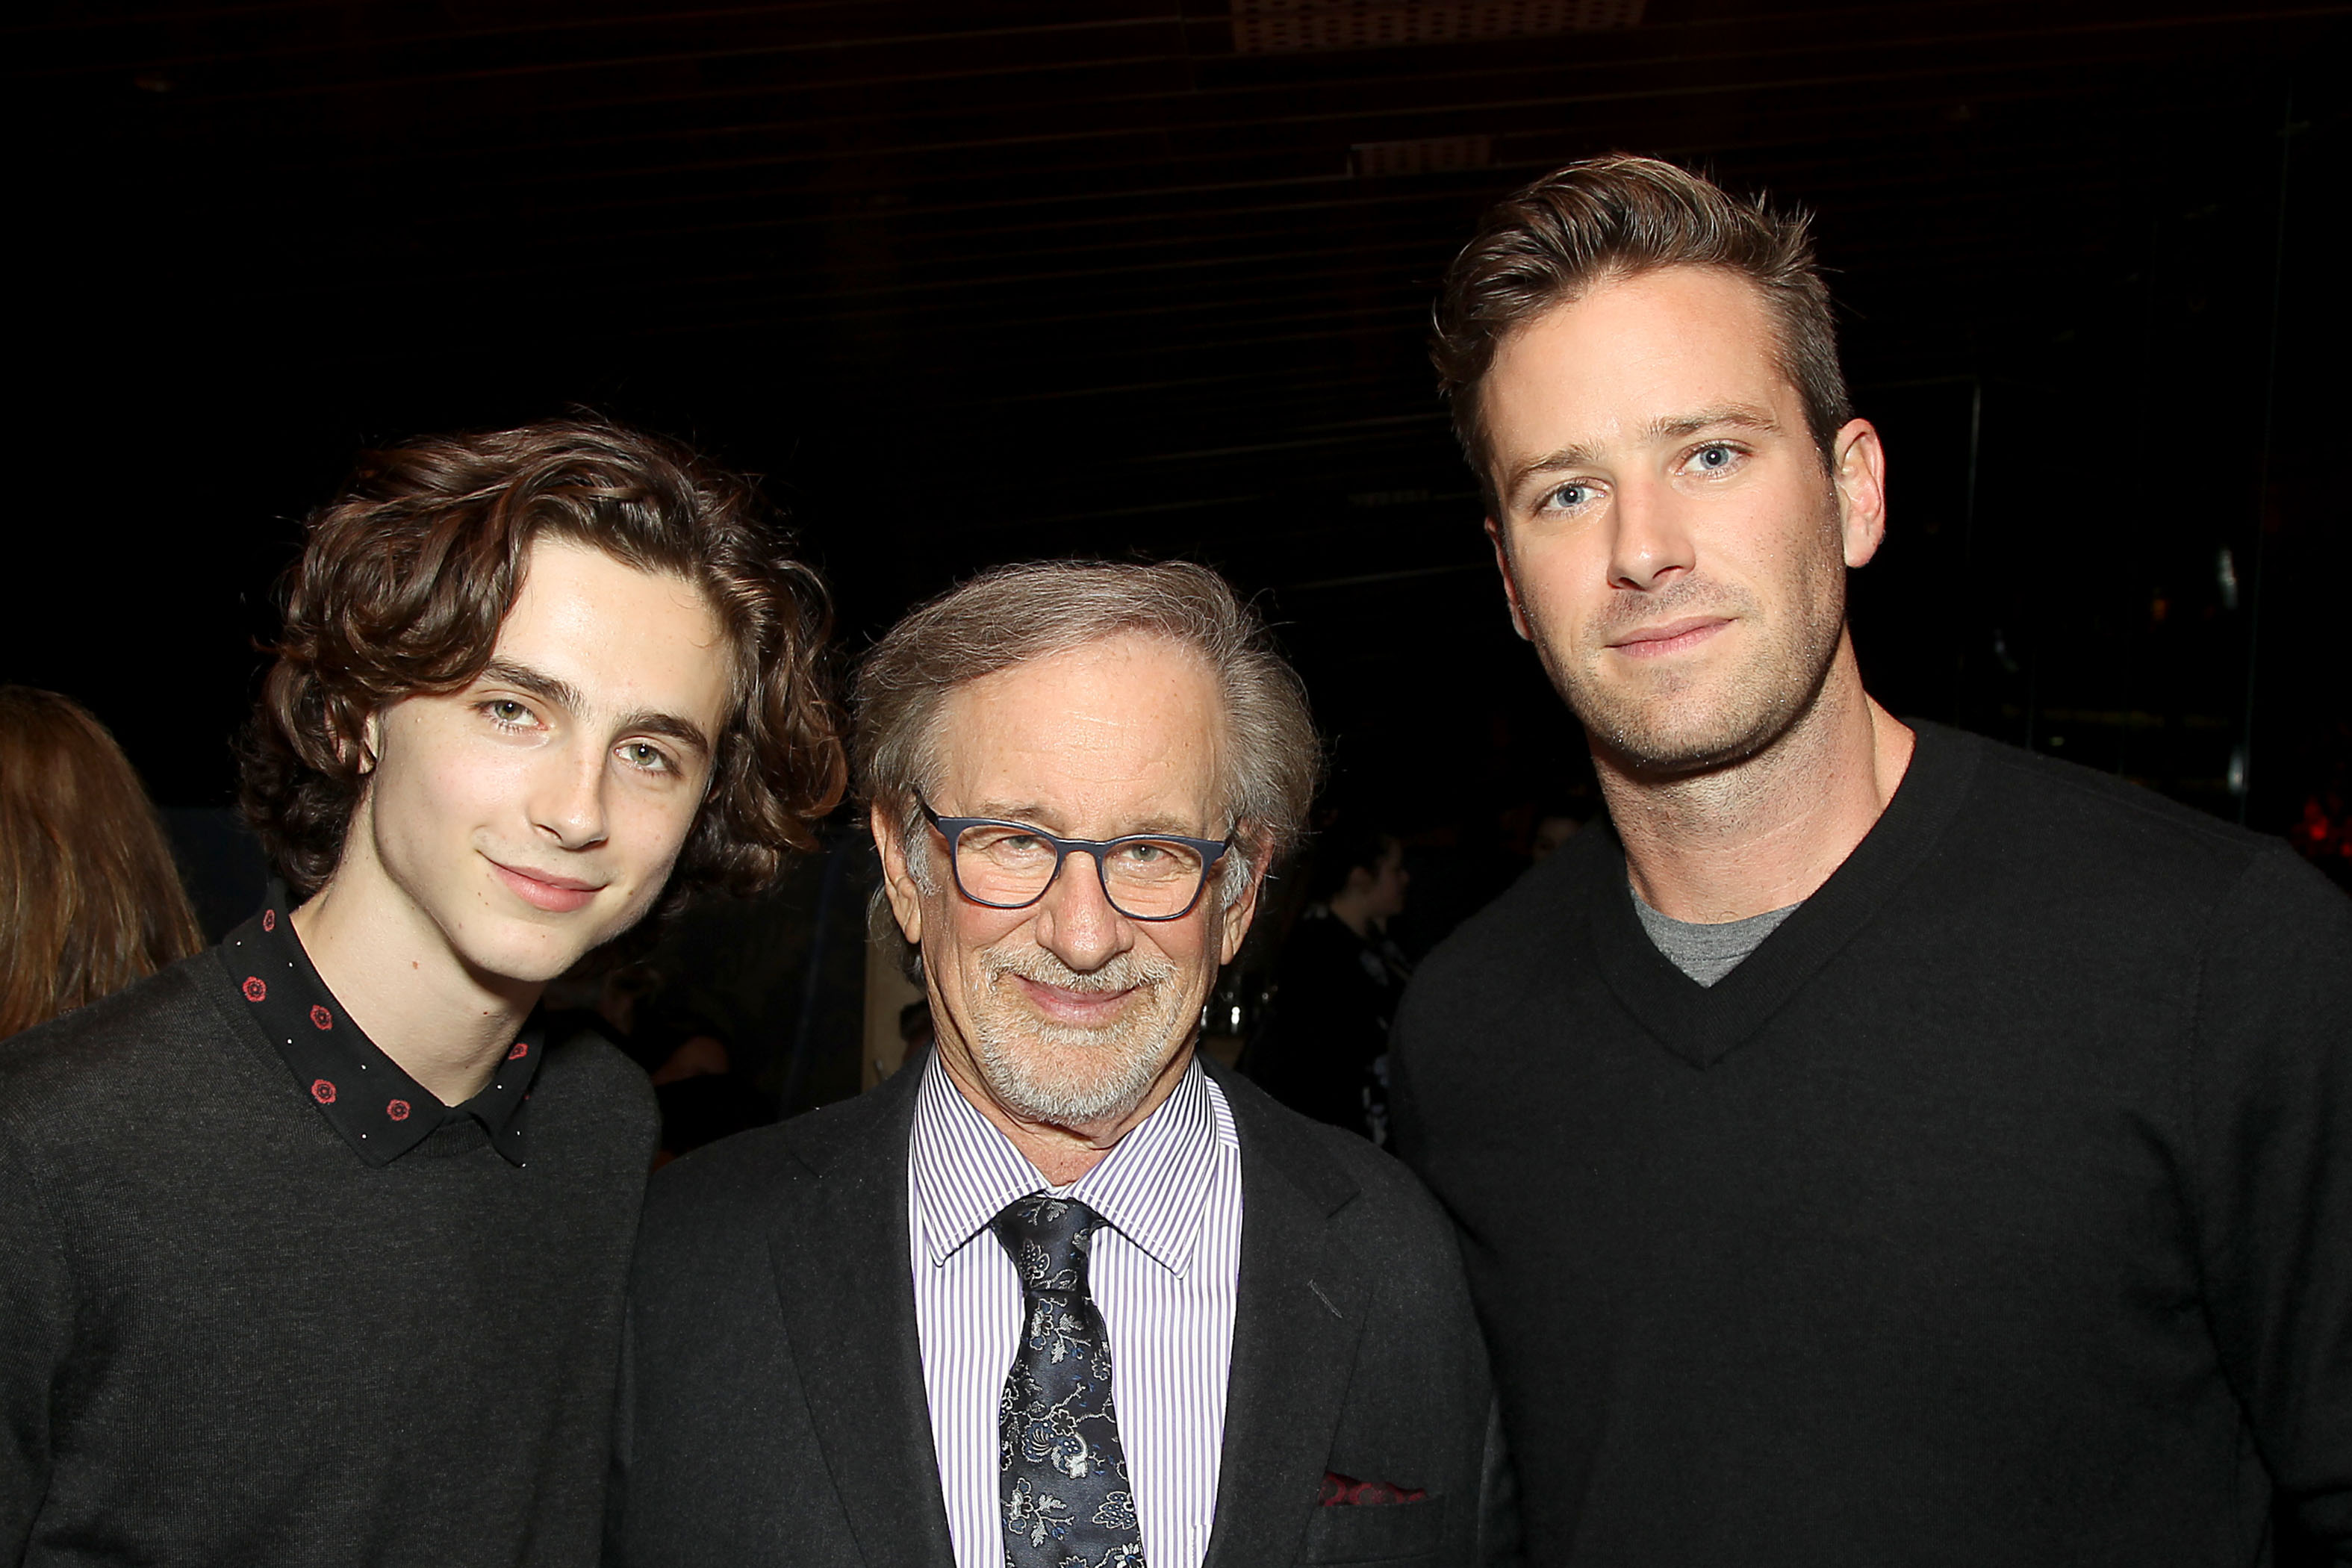 Timothee Chalamet, Steven Spielberg, Armie HammerHBO Documentary 'Spielberg' Premiere Screening at the 55th New York Film Festival - After Party, USA - 05 Oct 2017